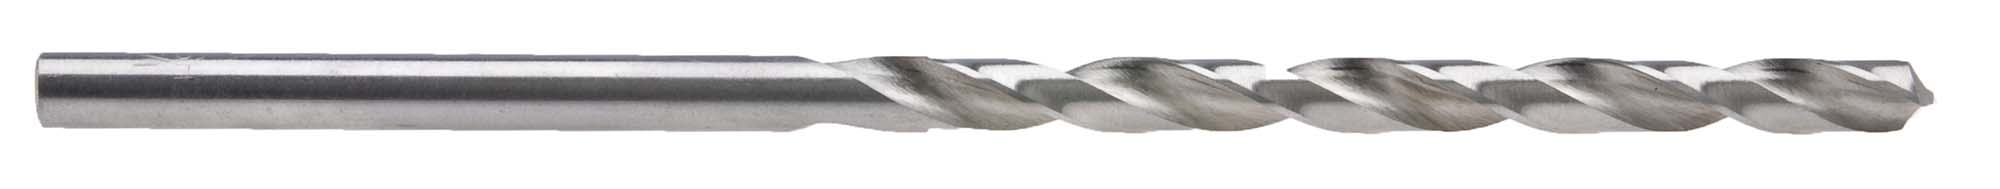 "61/64""  ""Taper Length"" Long Straight Shank Drill Bit, 11"" Overall Length, High Speed Steel"